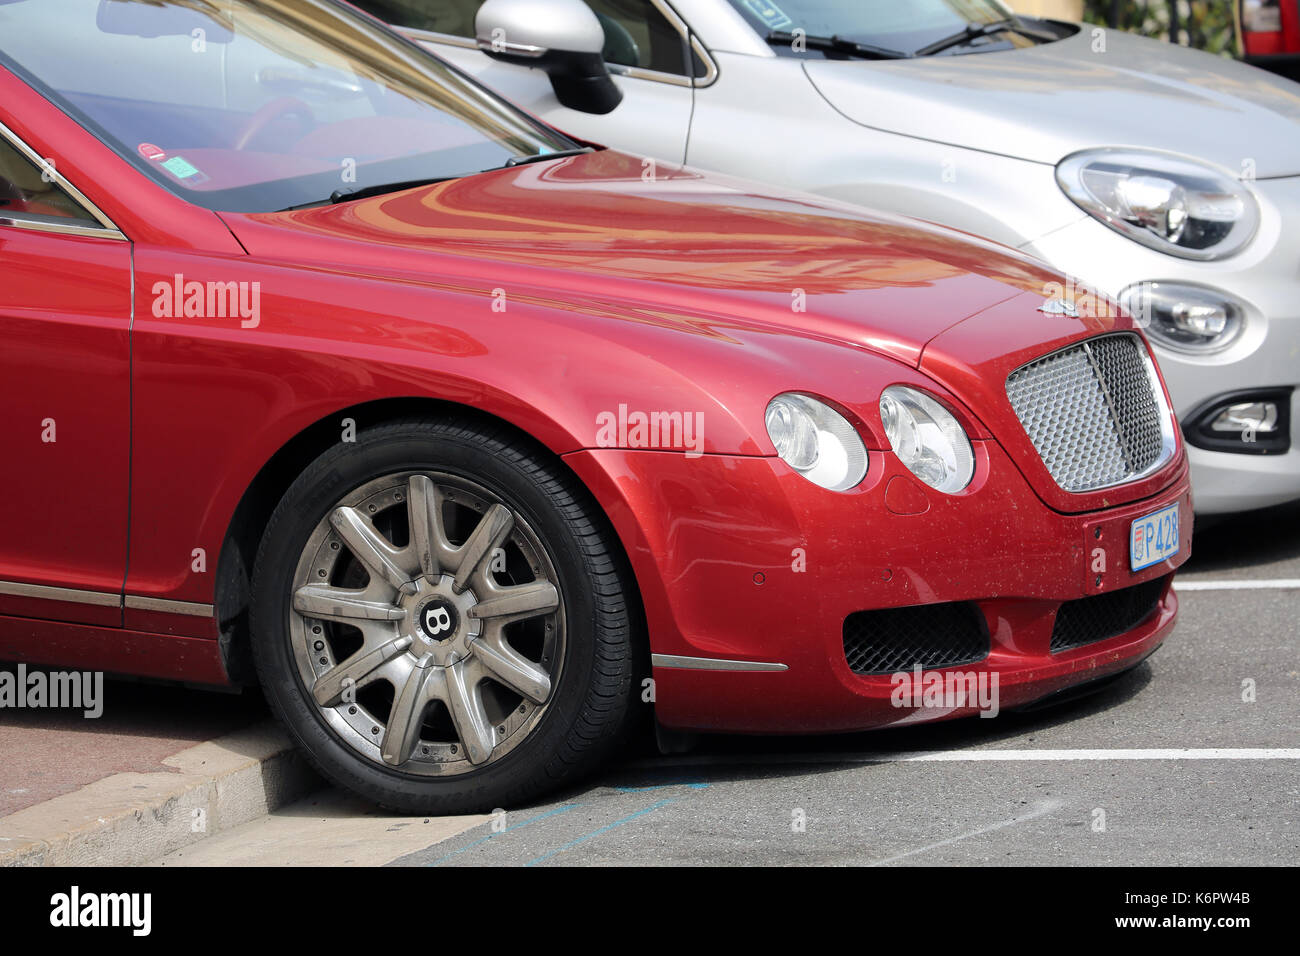 Monte-Carlo, Monaco - May 28, 2016: British Luxury Car Bentley Continental GTC Badly Parked on the Sidewalk in Monaco - Stock Image